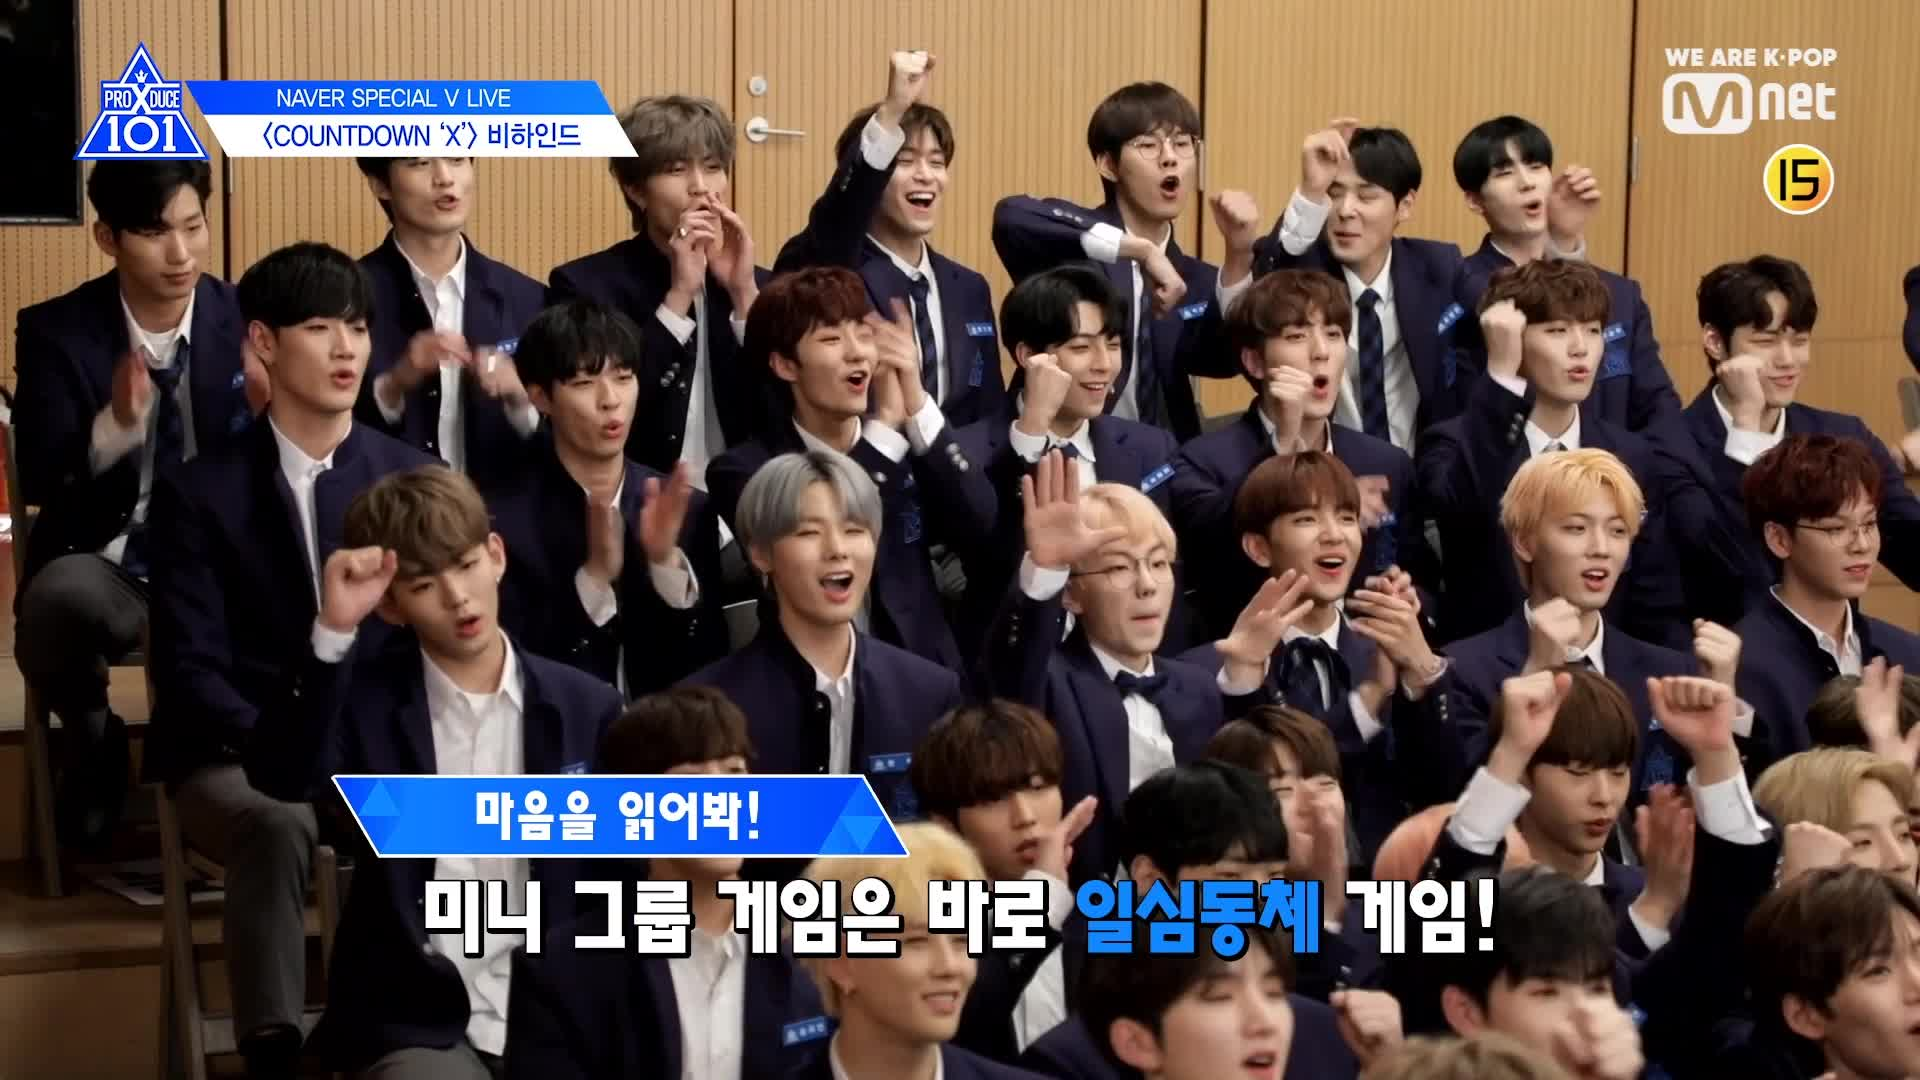 [PRODUCE X 101] NAVER SPECIAL V LIVE 'COUNTDOWN X' BEHIND